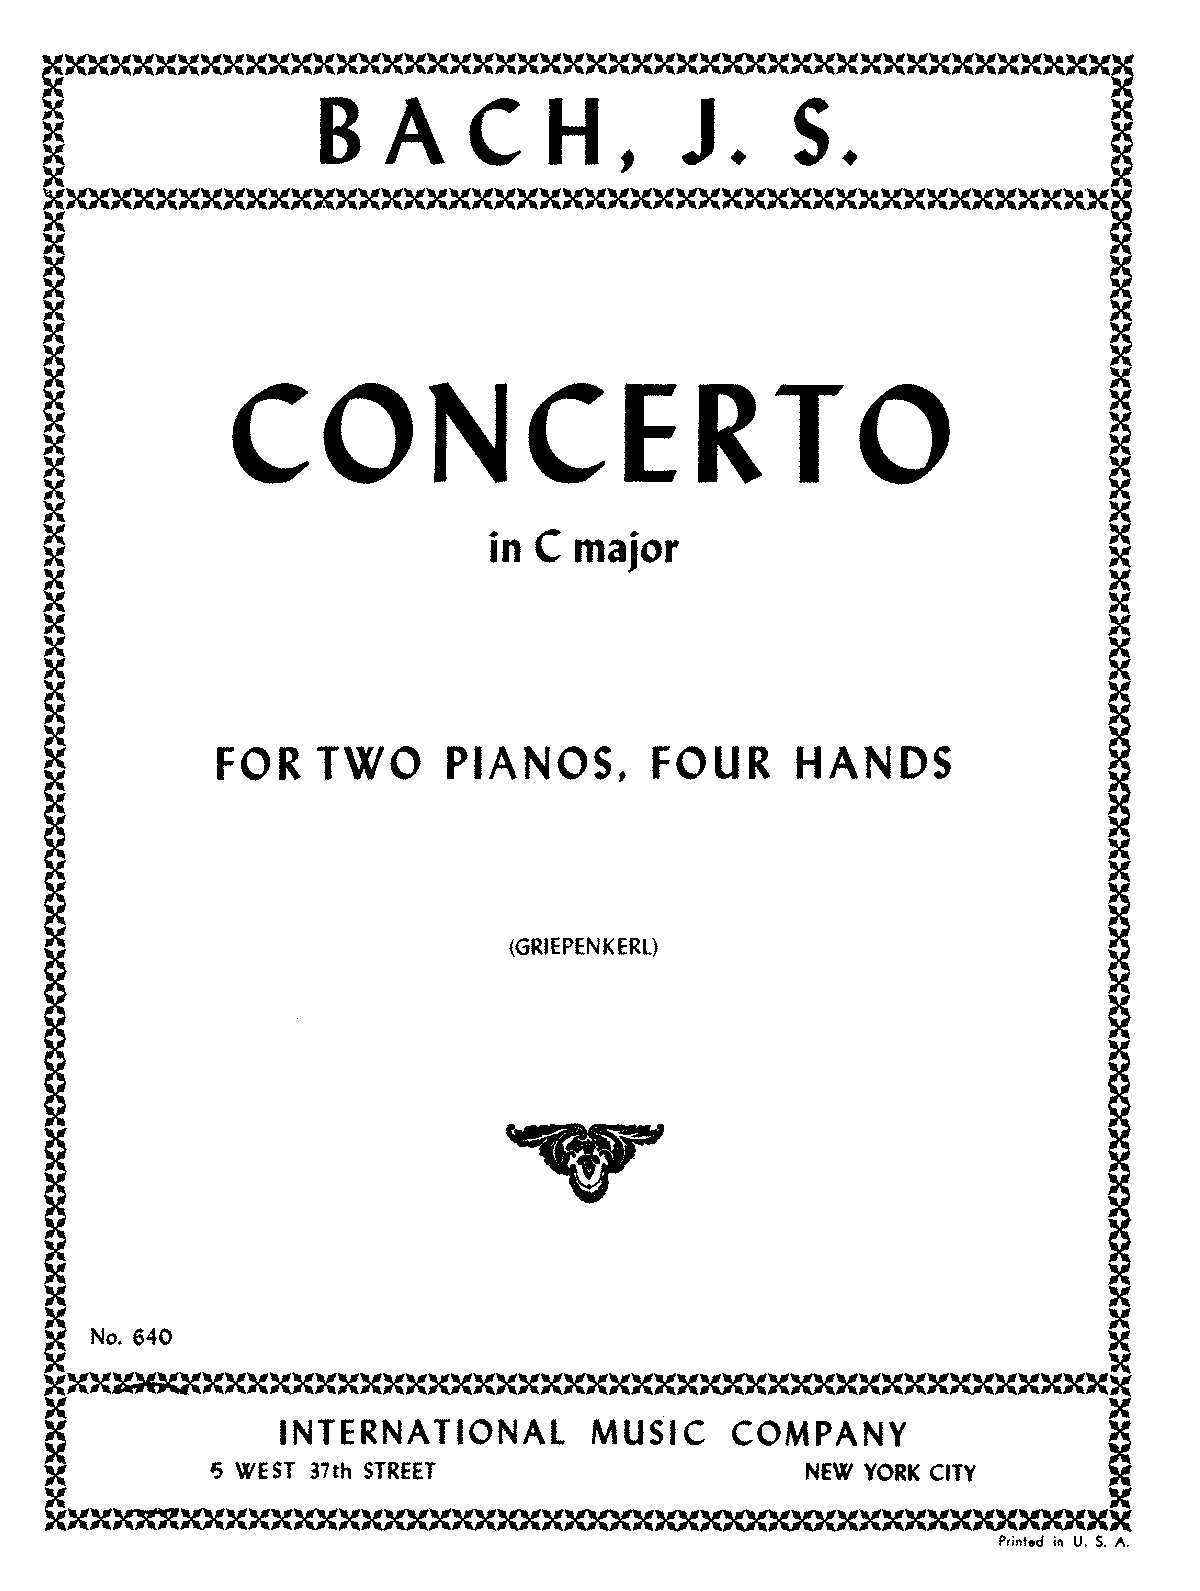 PMLP110934-000000000837 01 JSBach Concerto in C major Griepenkerl 2pianos IMC.PDF